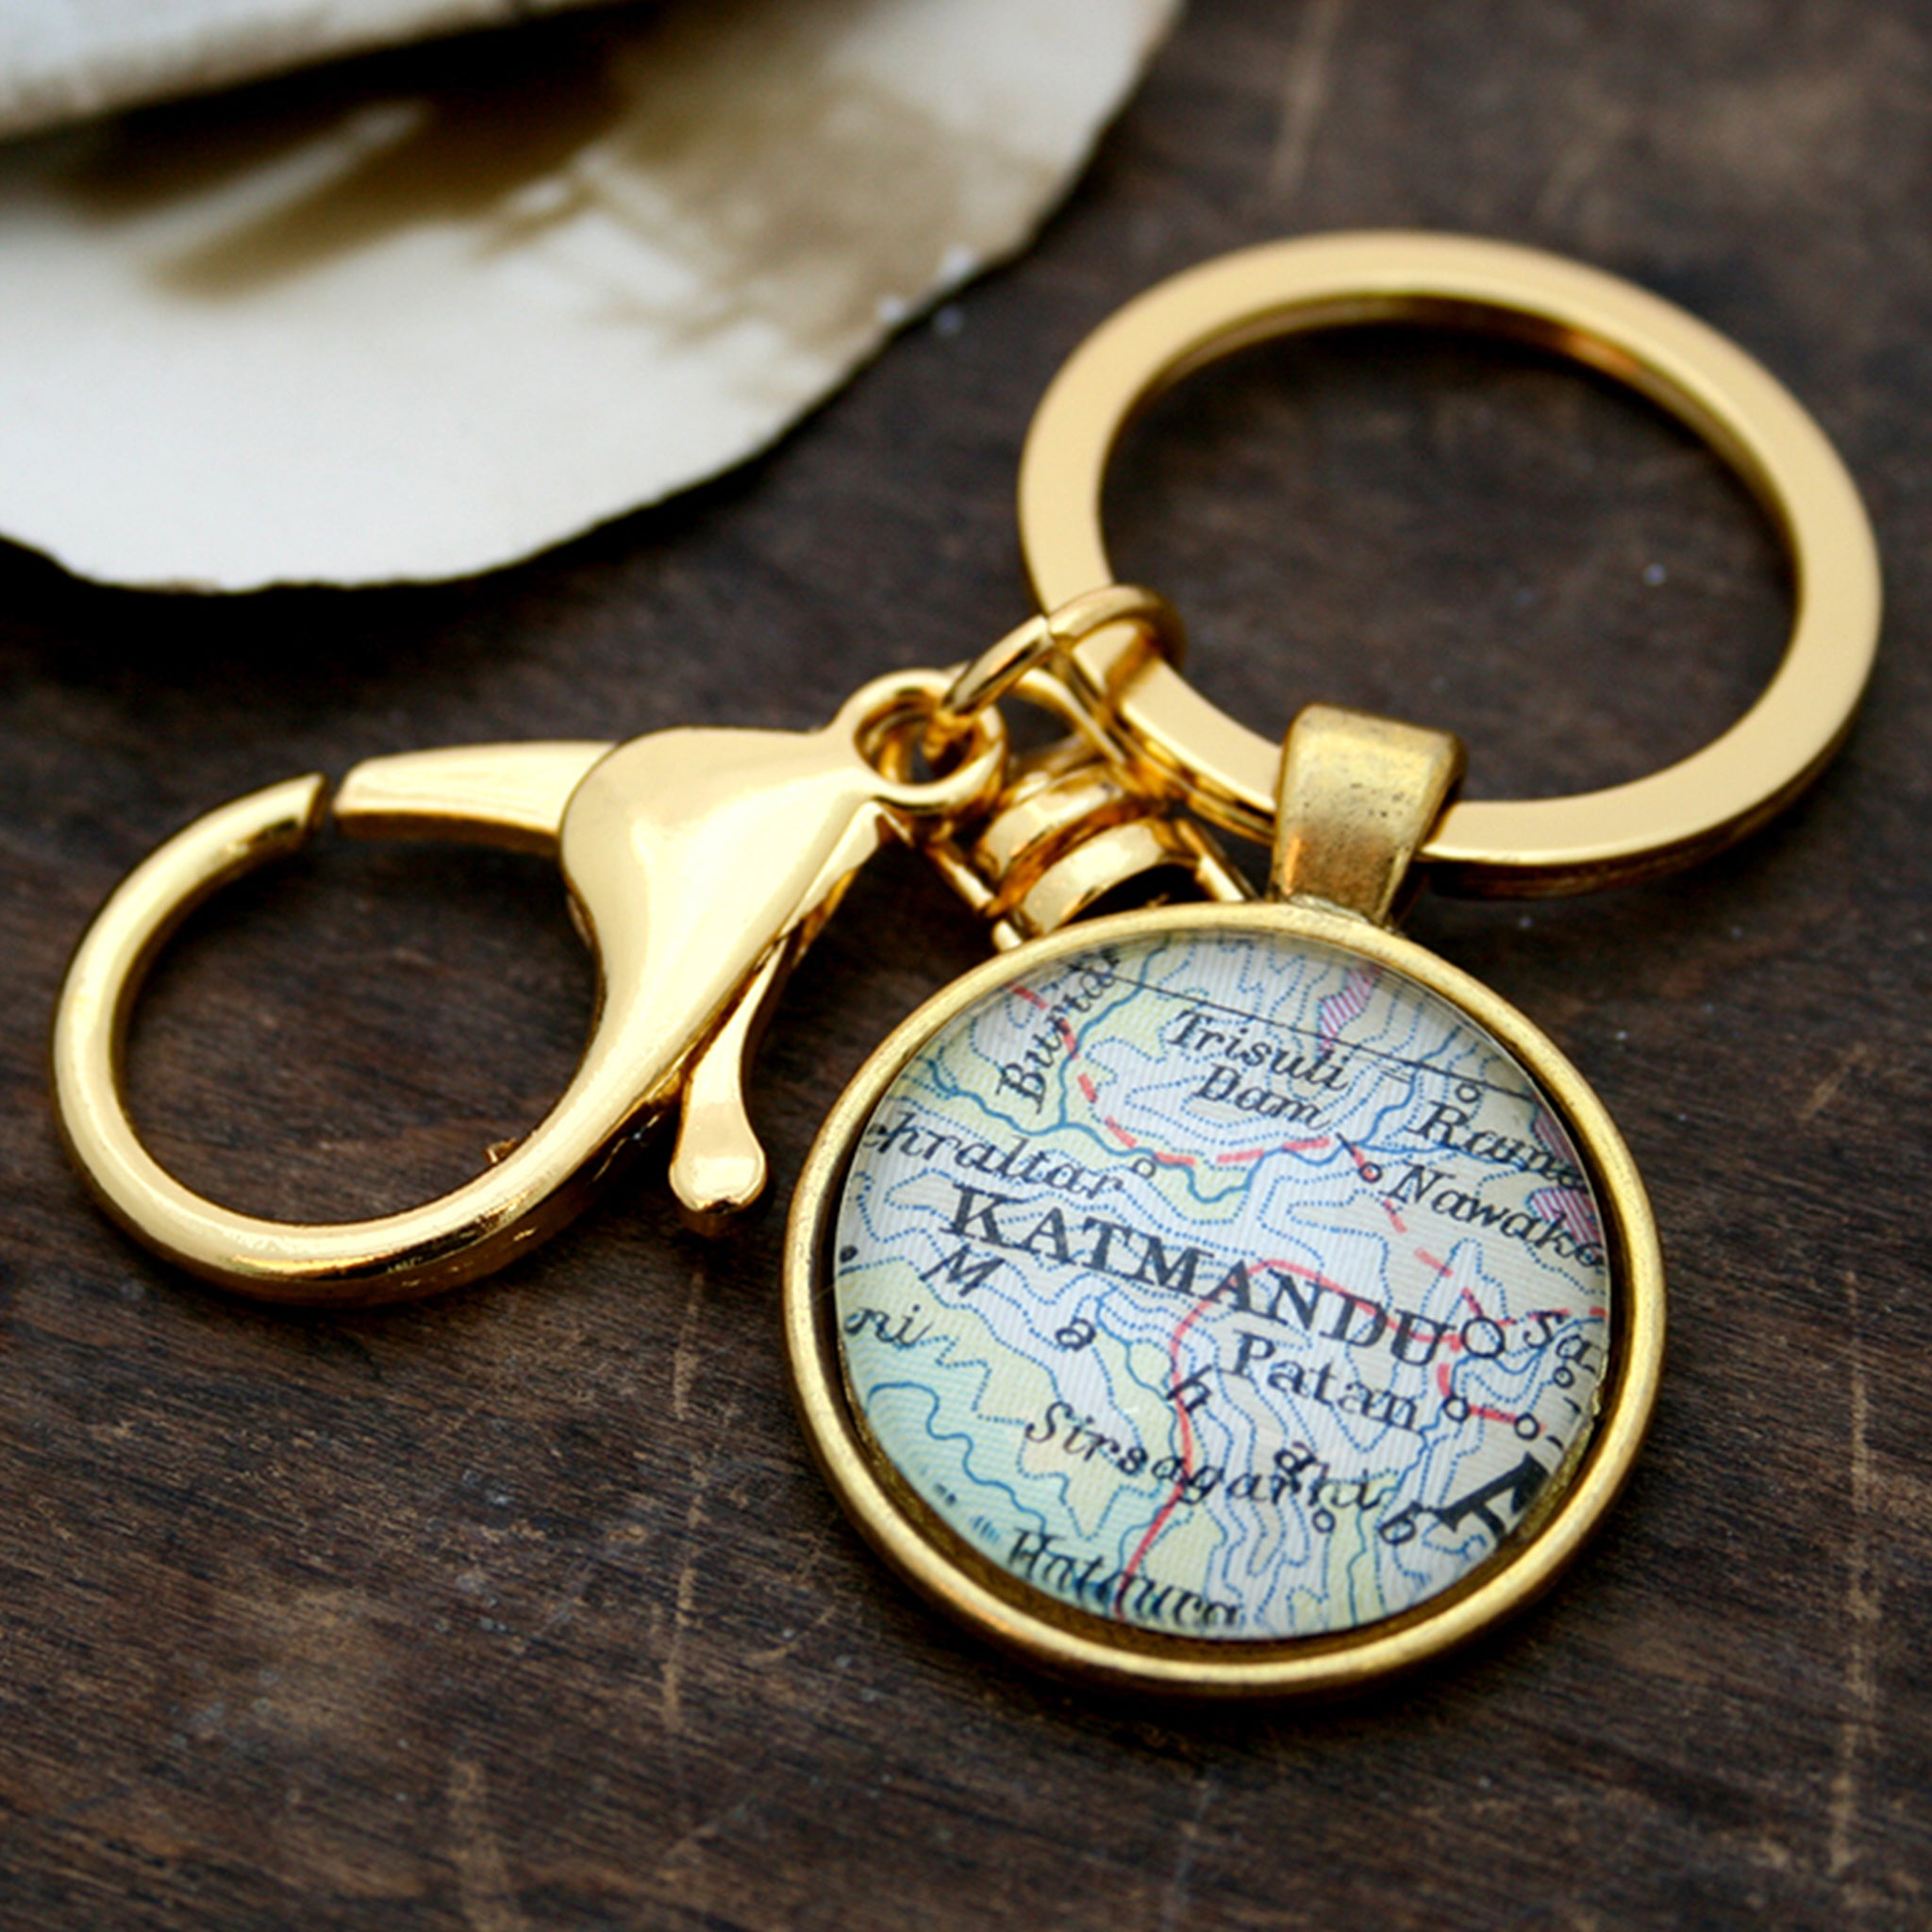 Personalised keyring in gold color featuring map of Kathmandu